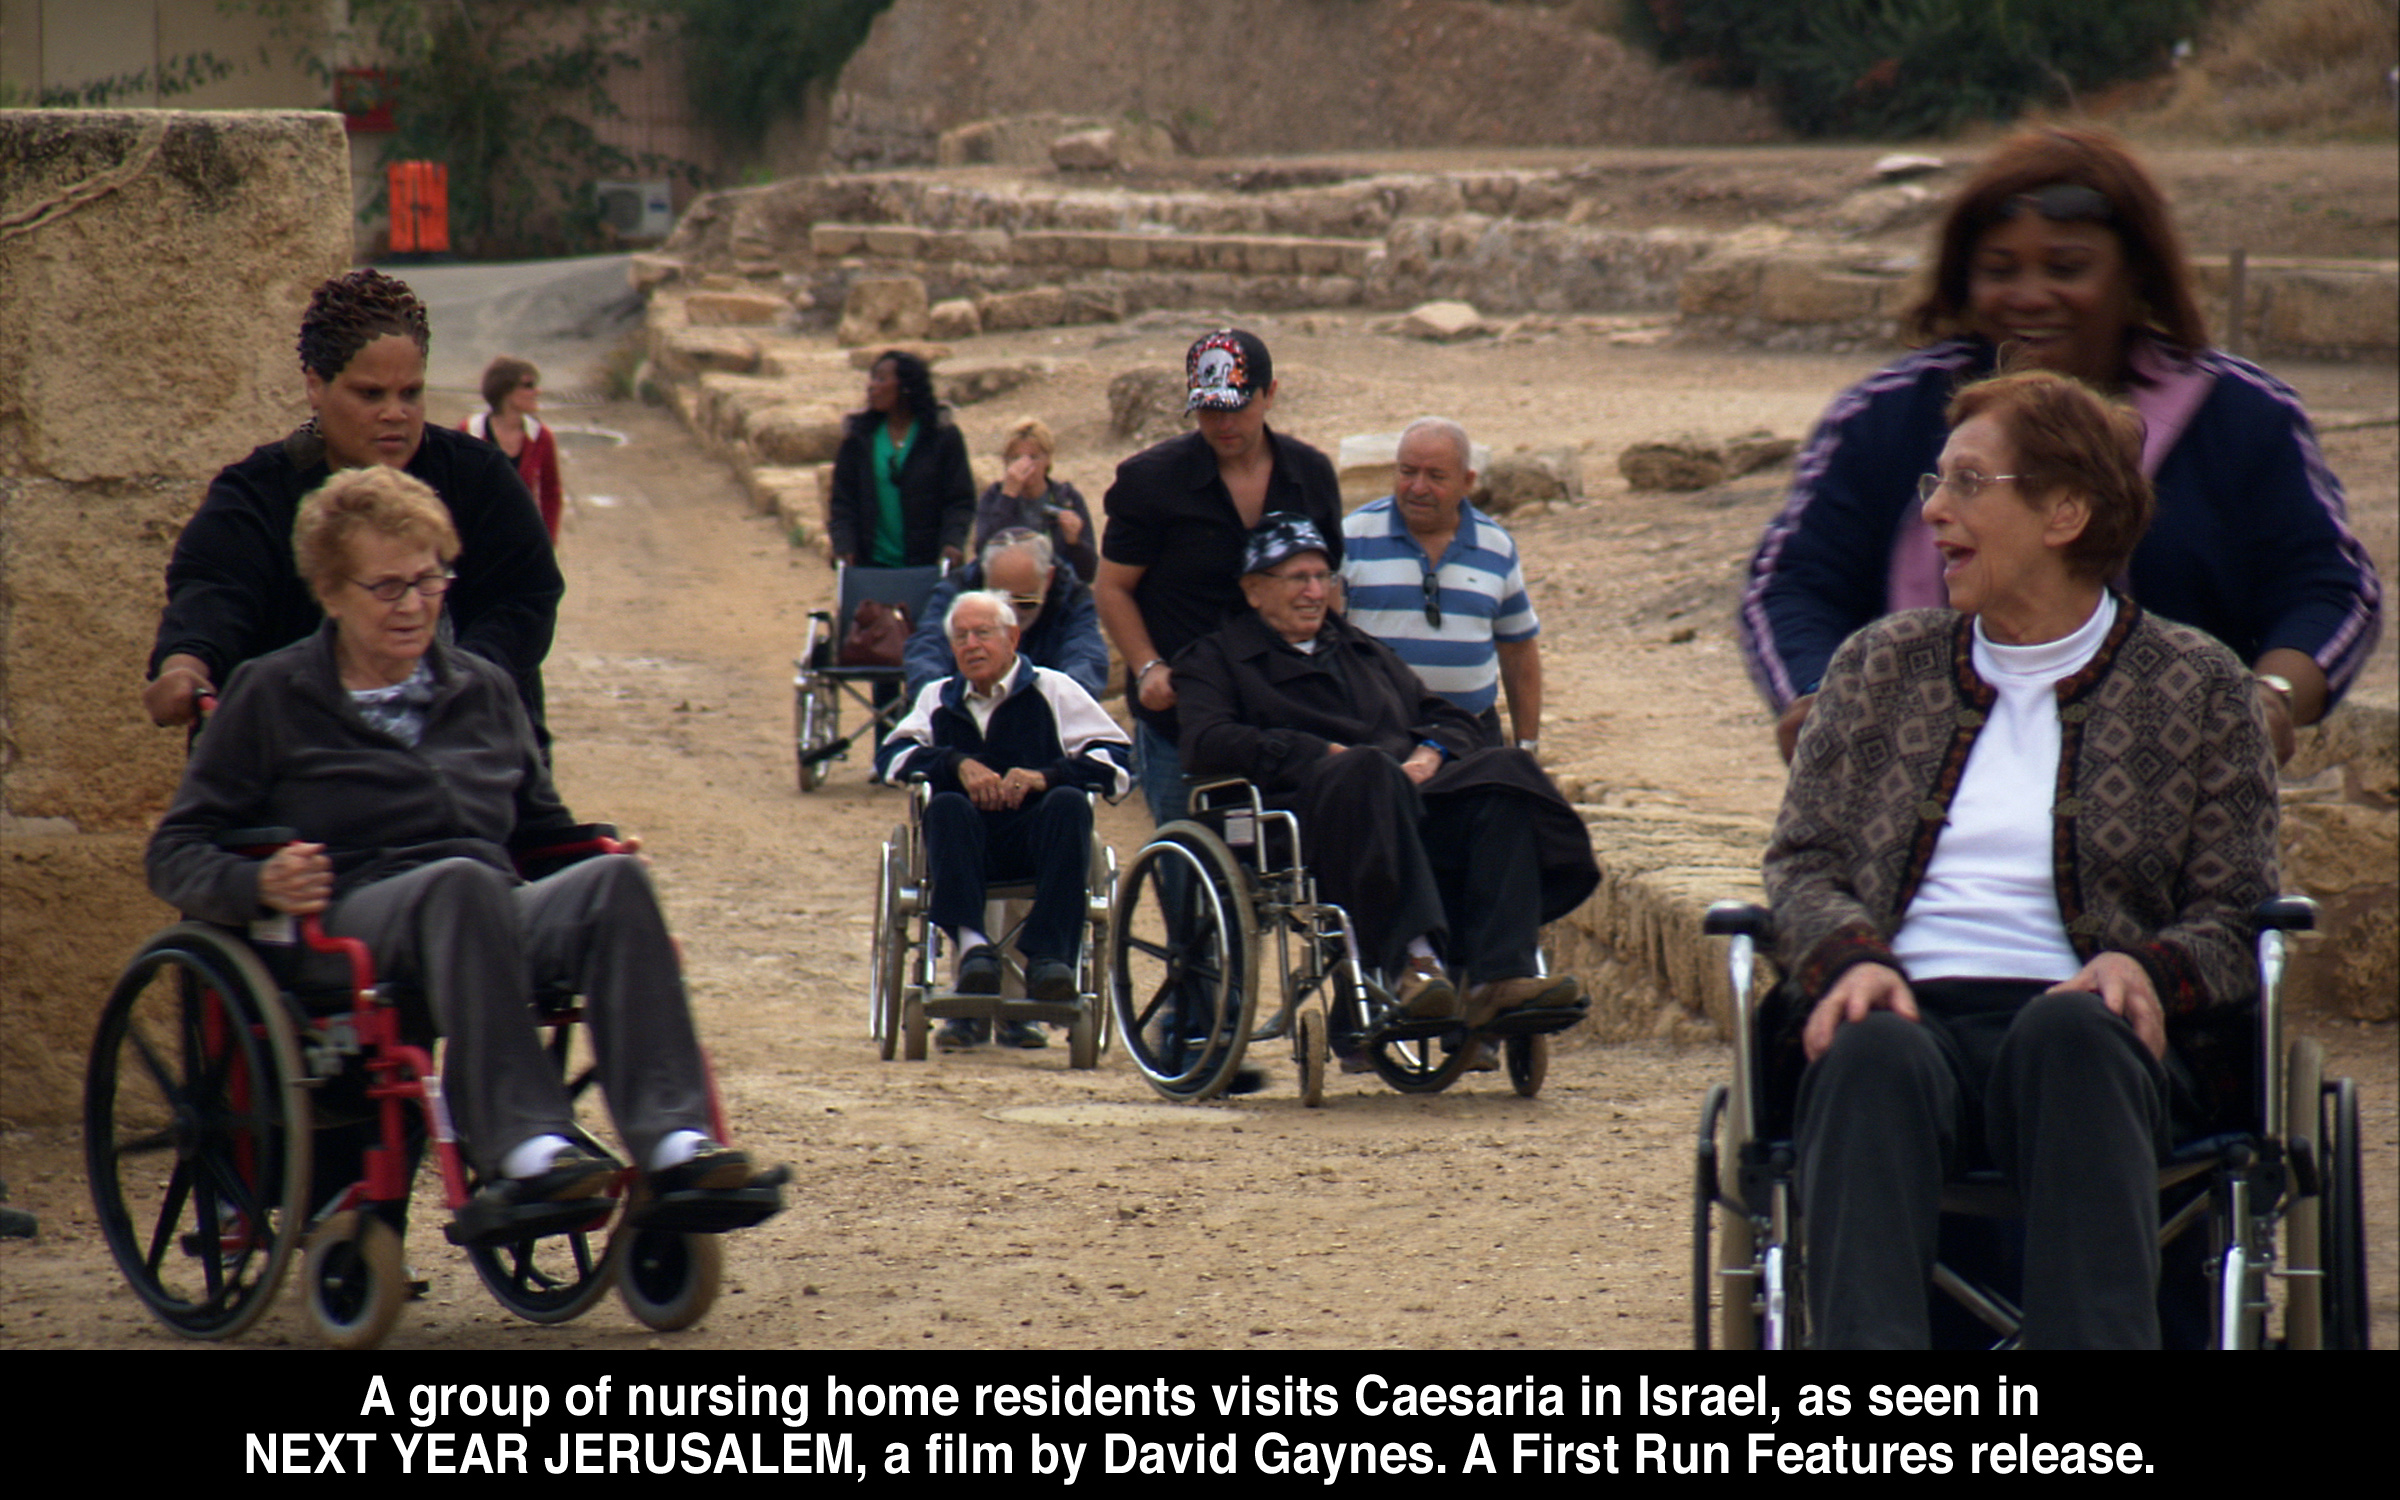 A group of nursing home residents visit Caesaria in Israel, as seen in Next Year   Jerusalem, a film by David Gaynes.